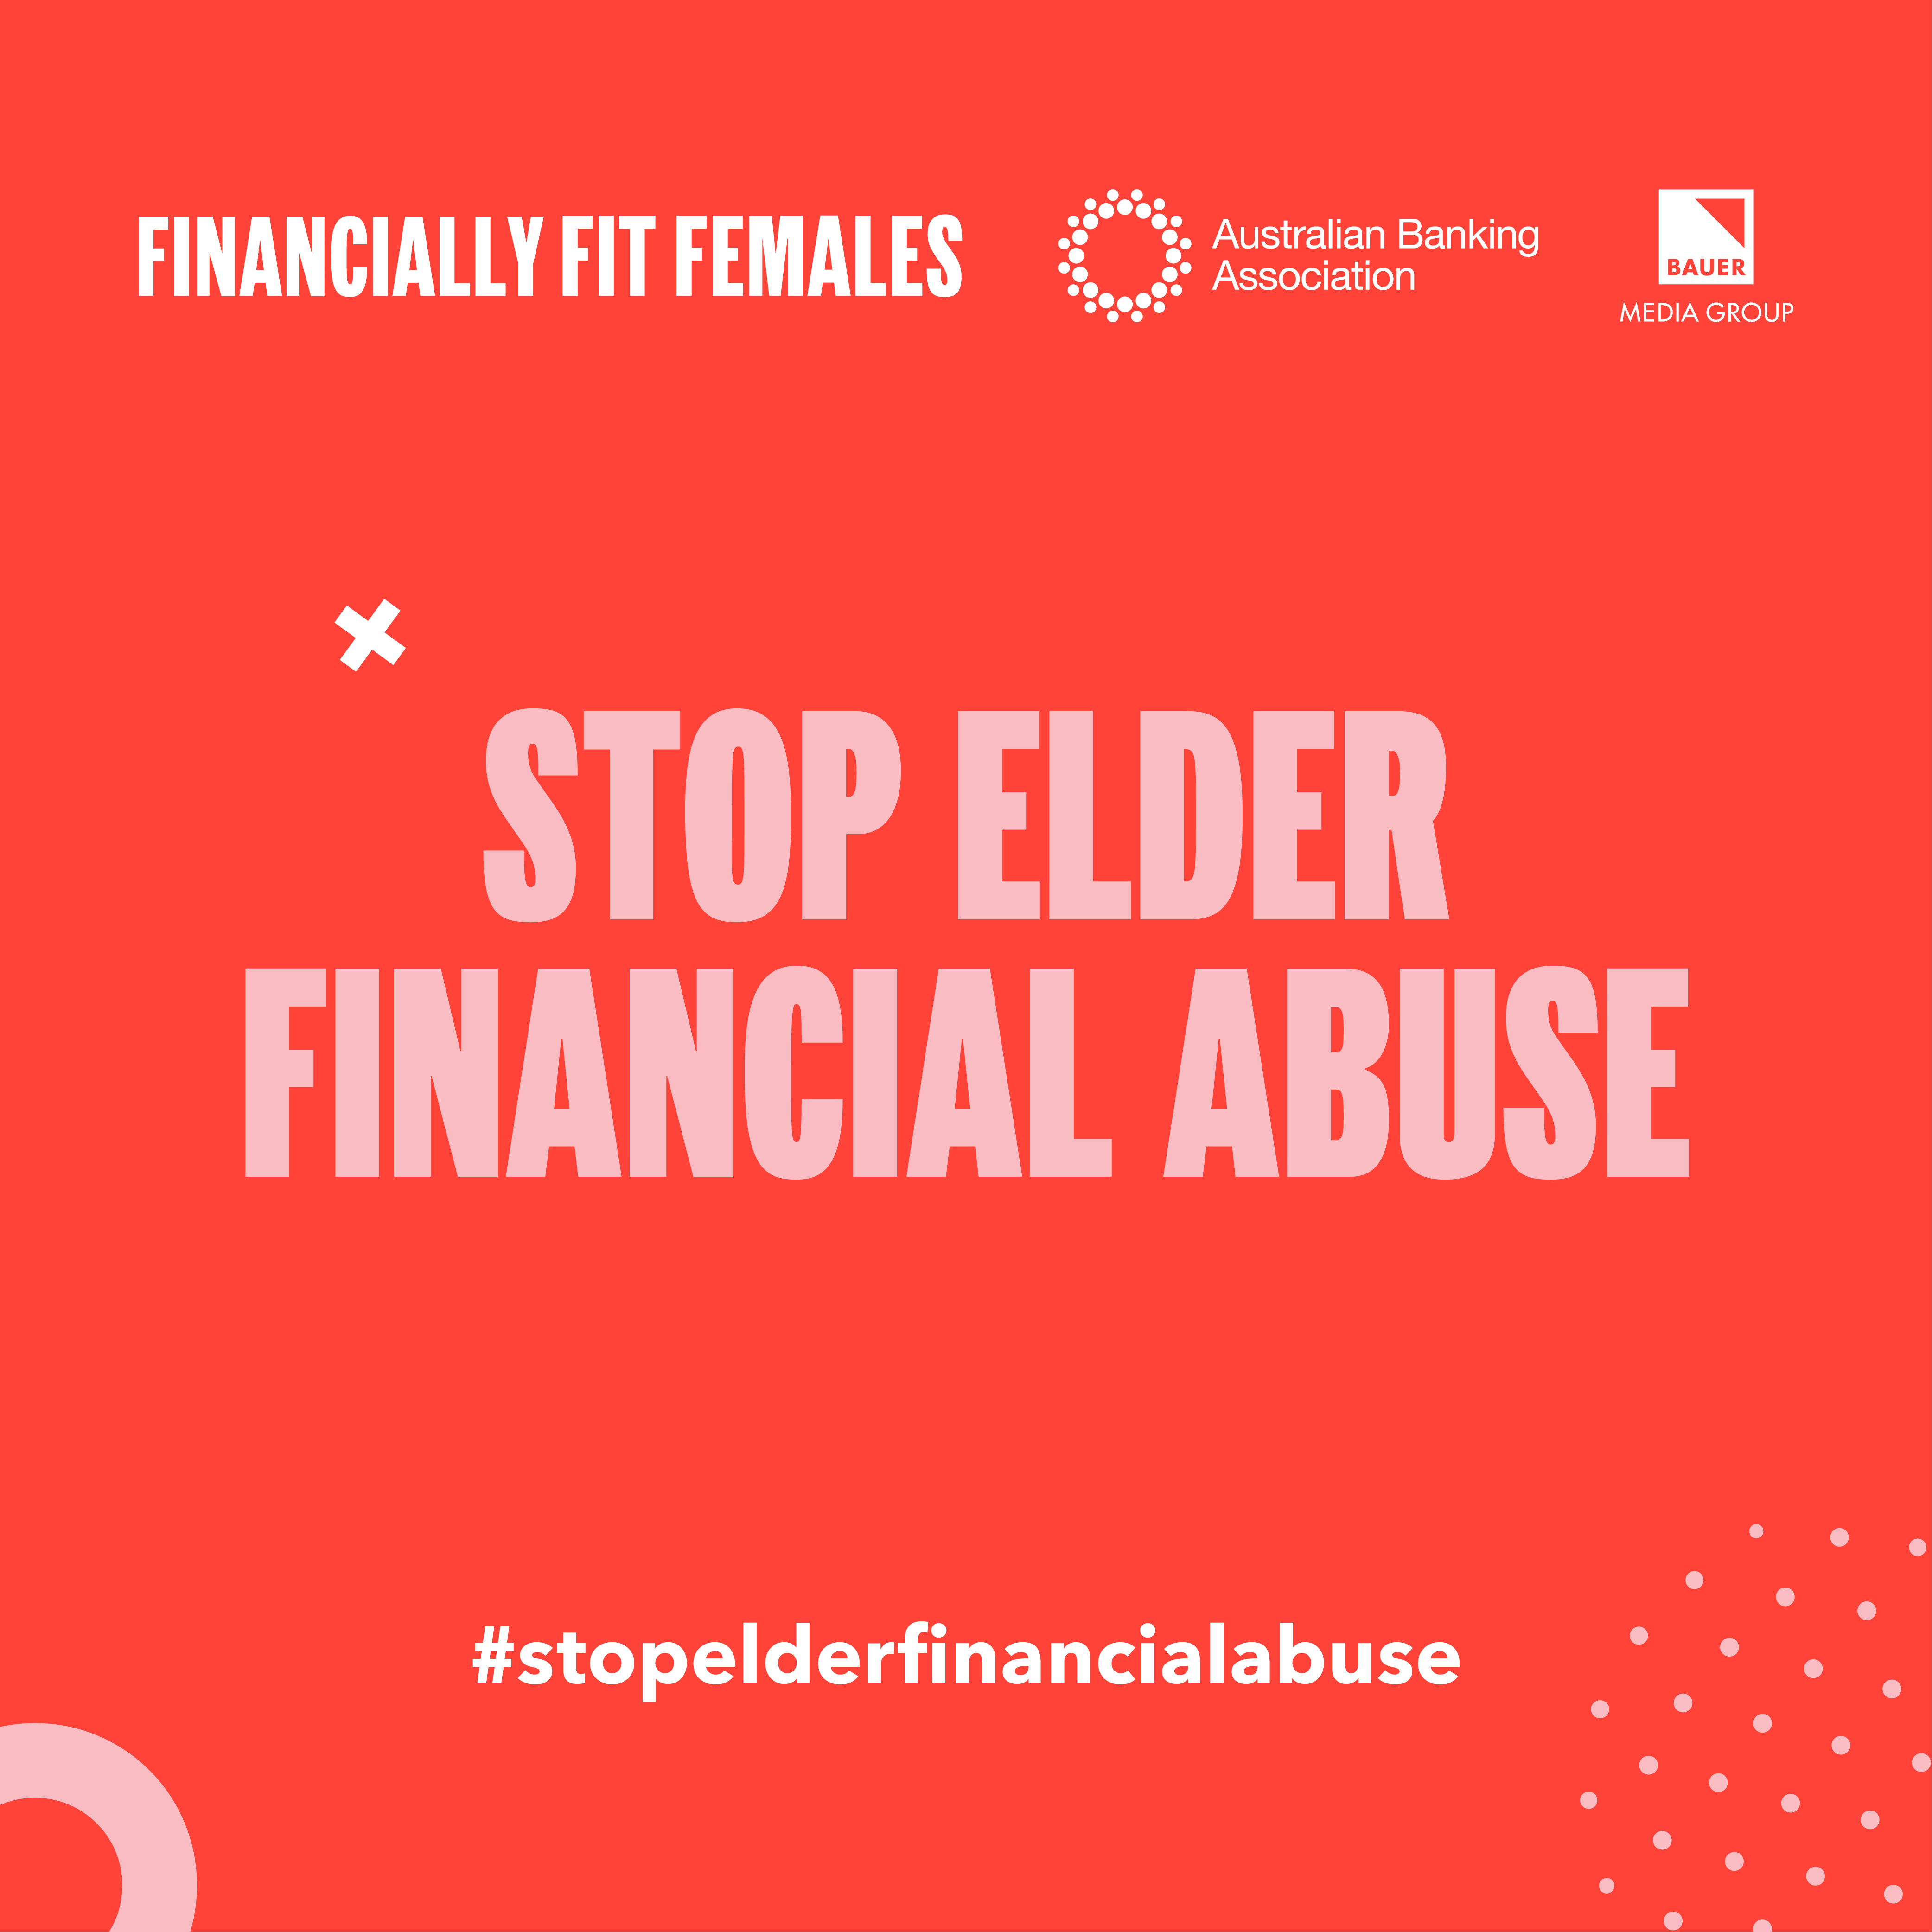 Australian Banking Association campaign tackles elder financial abuse via Bauer Media's Story54